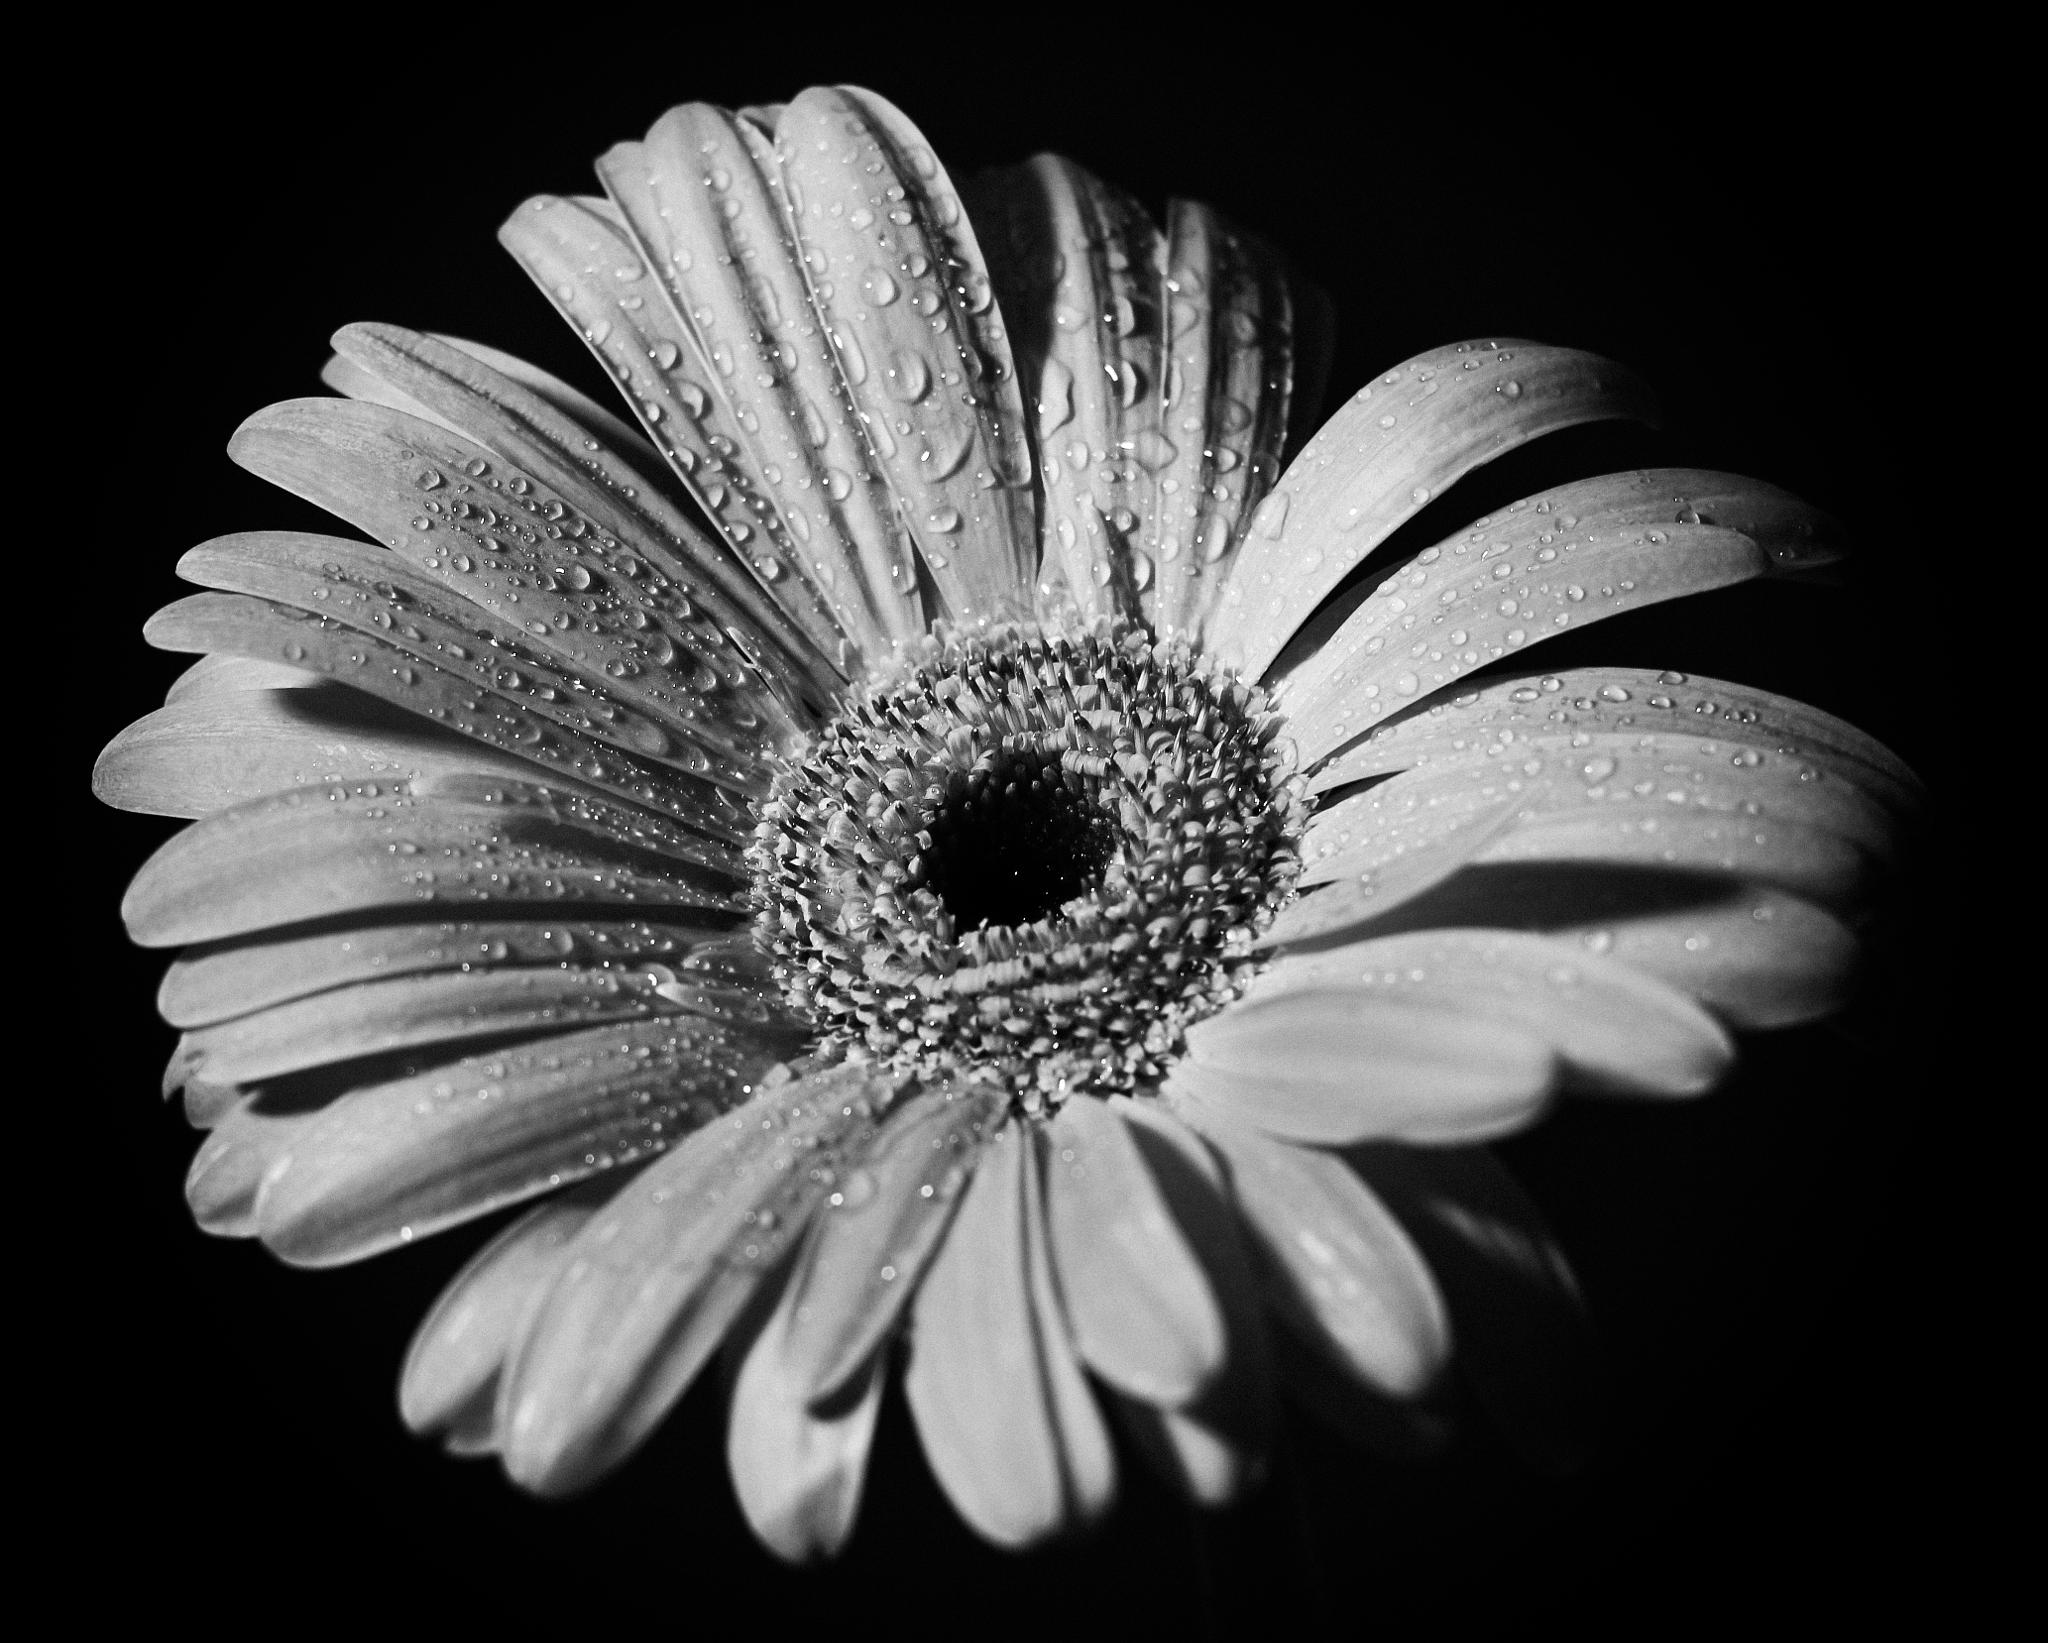 Simply a flower by David Cantos